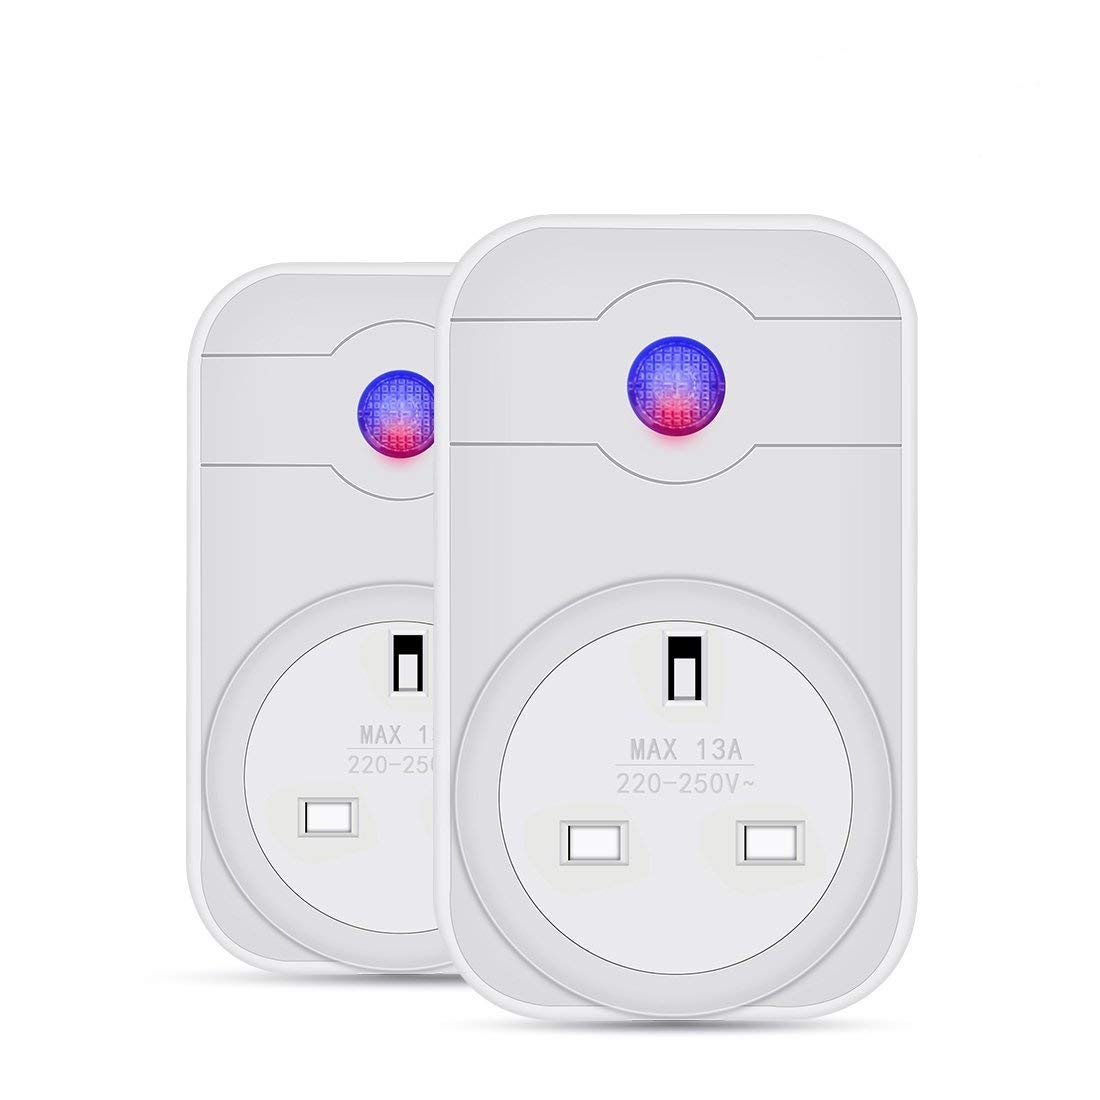 Leyuee Wi-Fi Smart Plug Compatible with Alexa Google Home Echo Wireless Smart Socket Remote Control Your Devices for iPhone Android Devices (UK Plug) (2 Pcs)